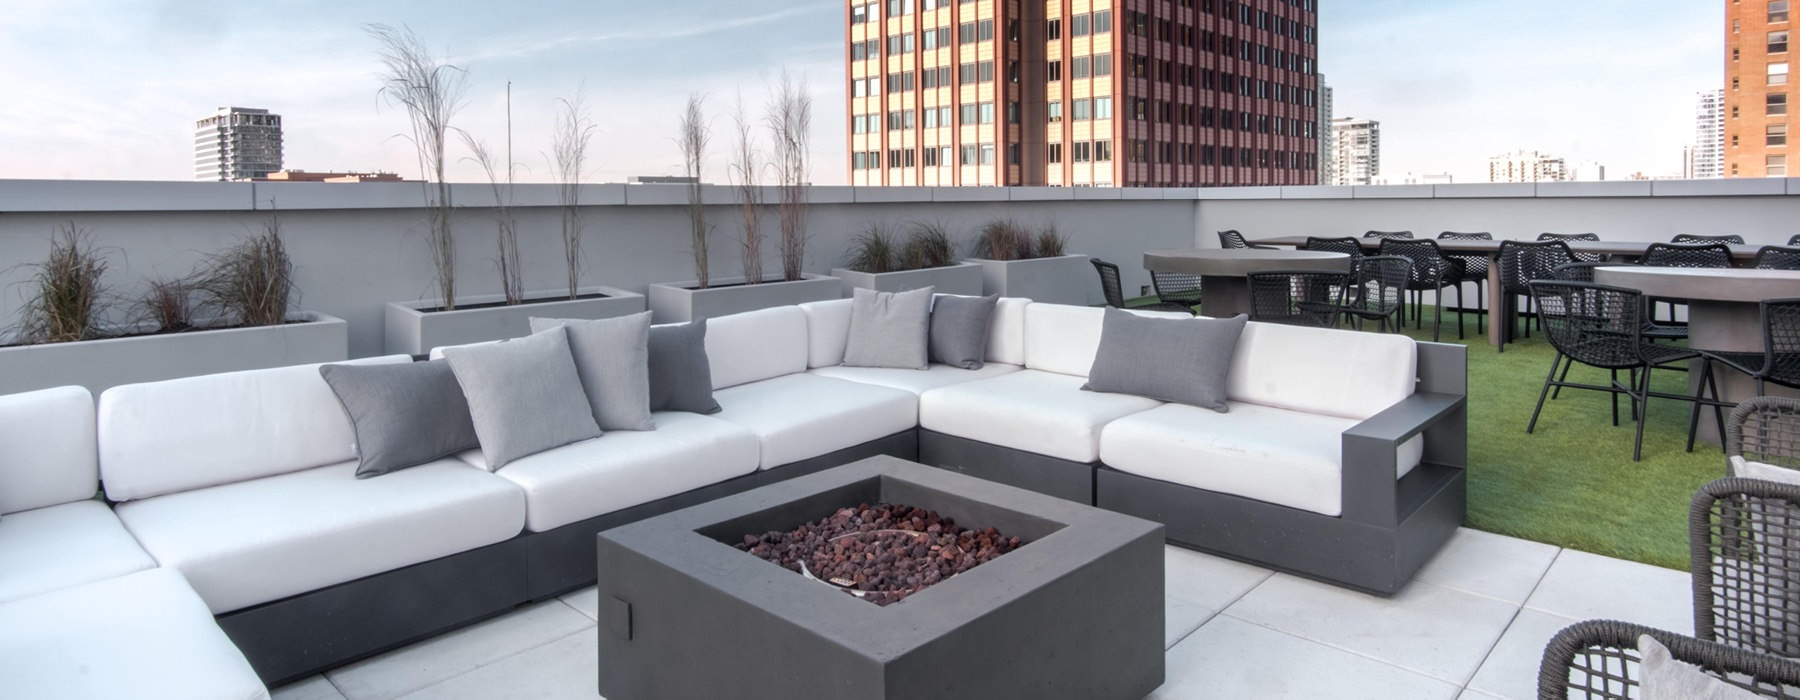 Rooftop Deck Fireplace and table seating area